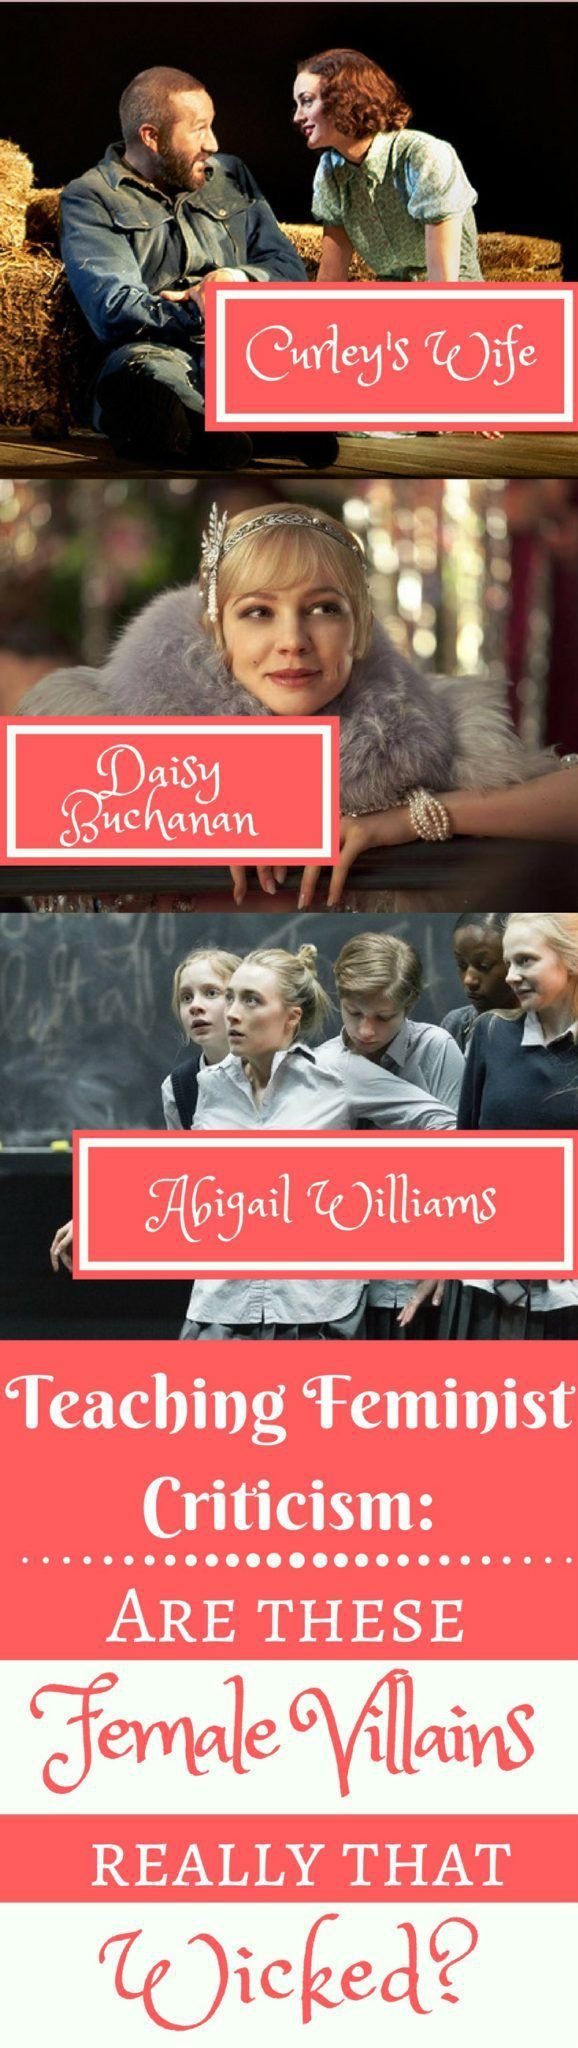 A blog about challenging students to question why we hate the females of Gatsby (Daisy Buchanan), Of Mice and Men (Curley's Wife), and The Crucible (Abigail Williams). Links to actress interview to help teach feminist criticism with current resources.